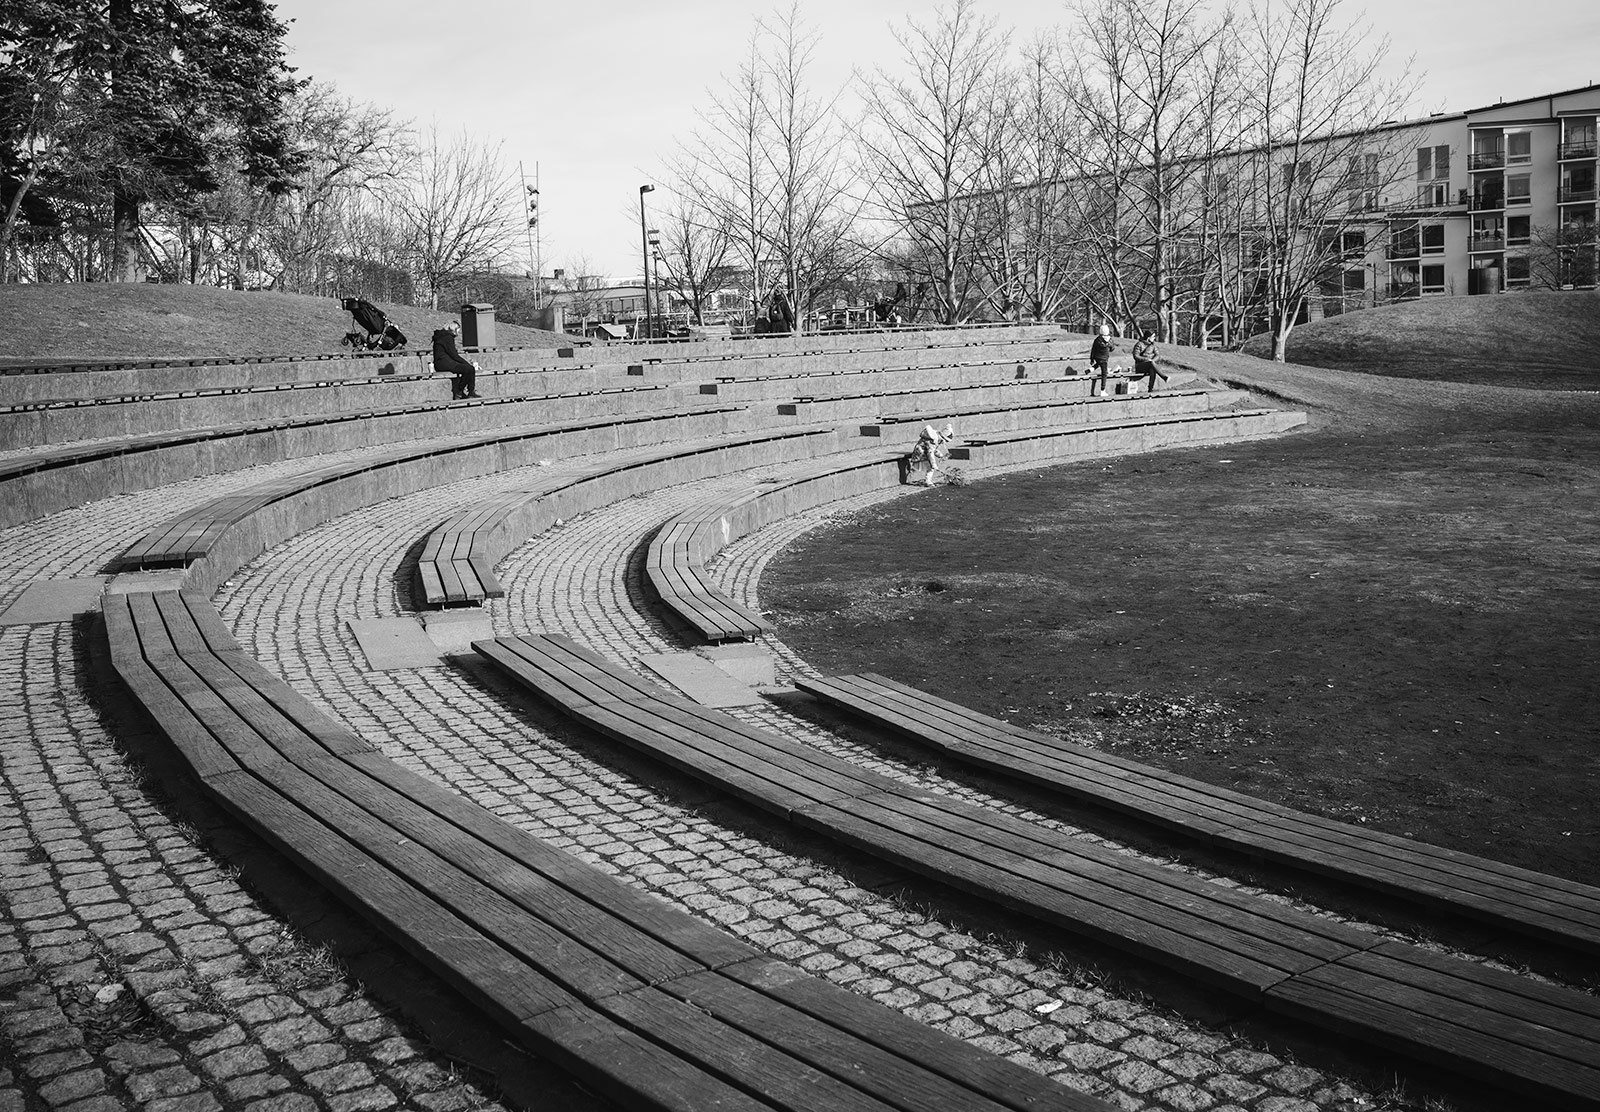 Curved wooden seats